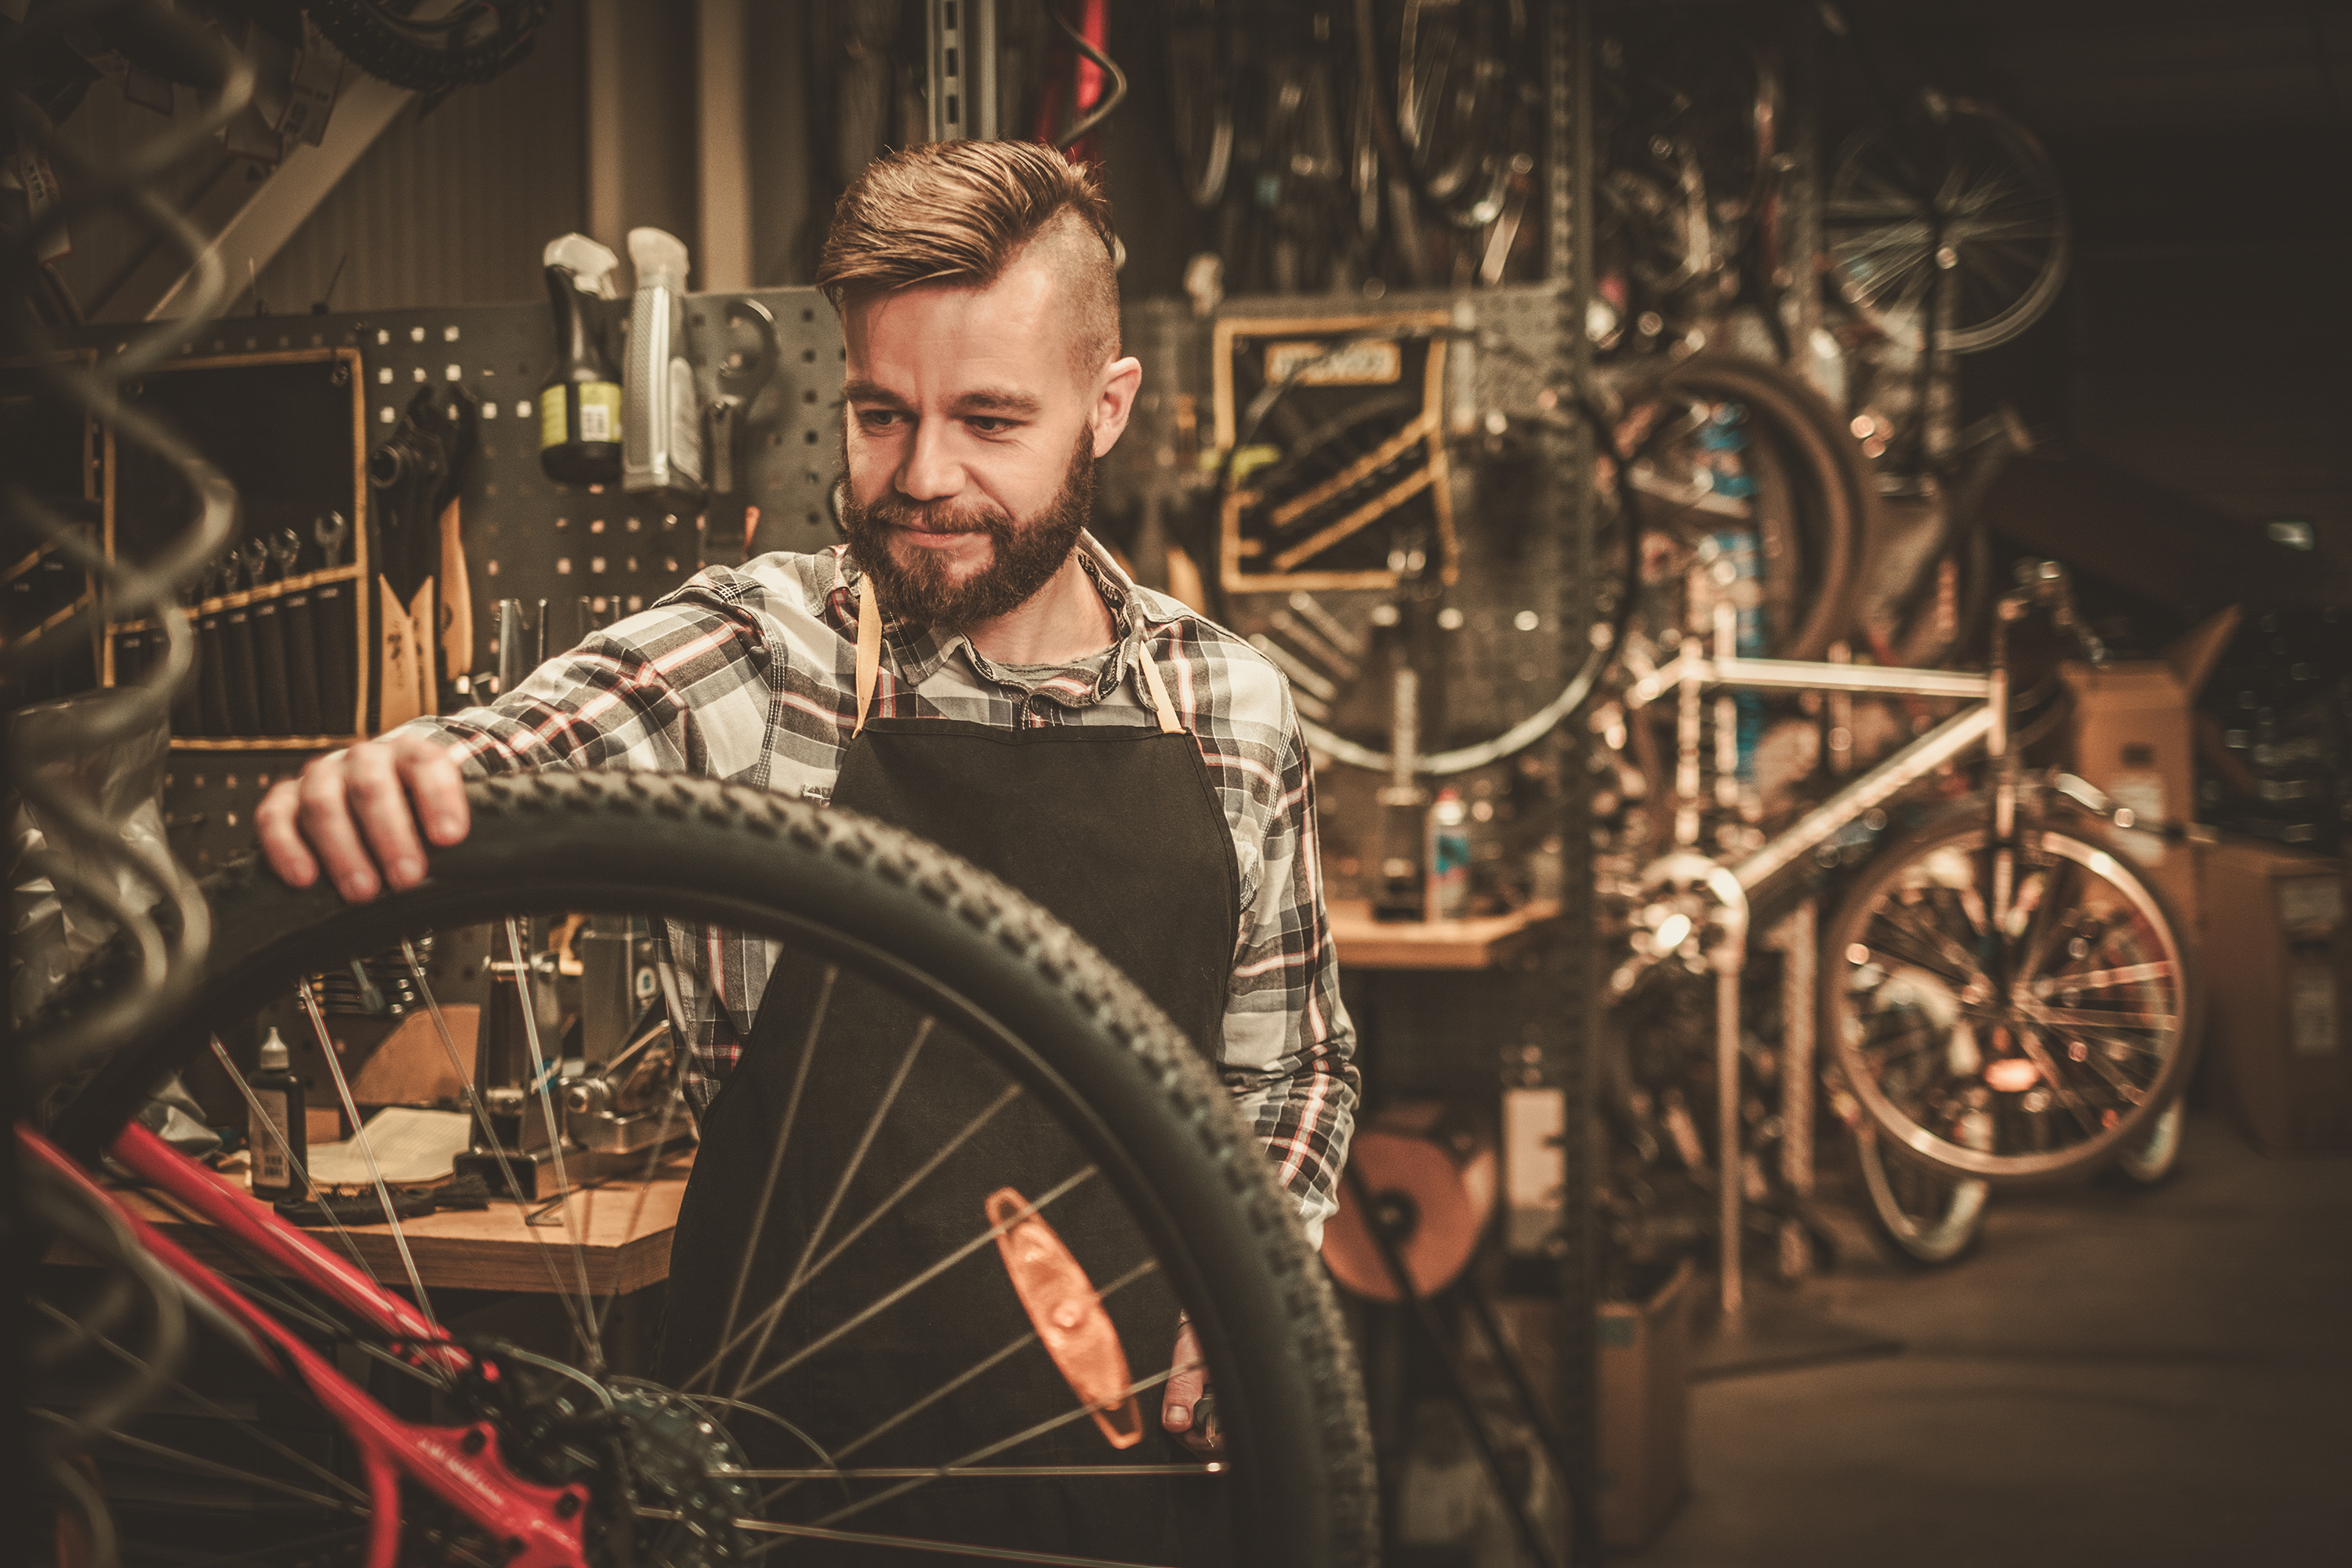 LEED Mechanic measures a bicycle wheel to convert the bike to electric with an e-bike kit.